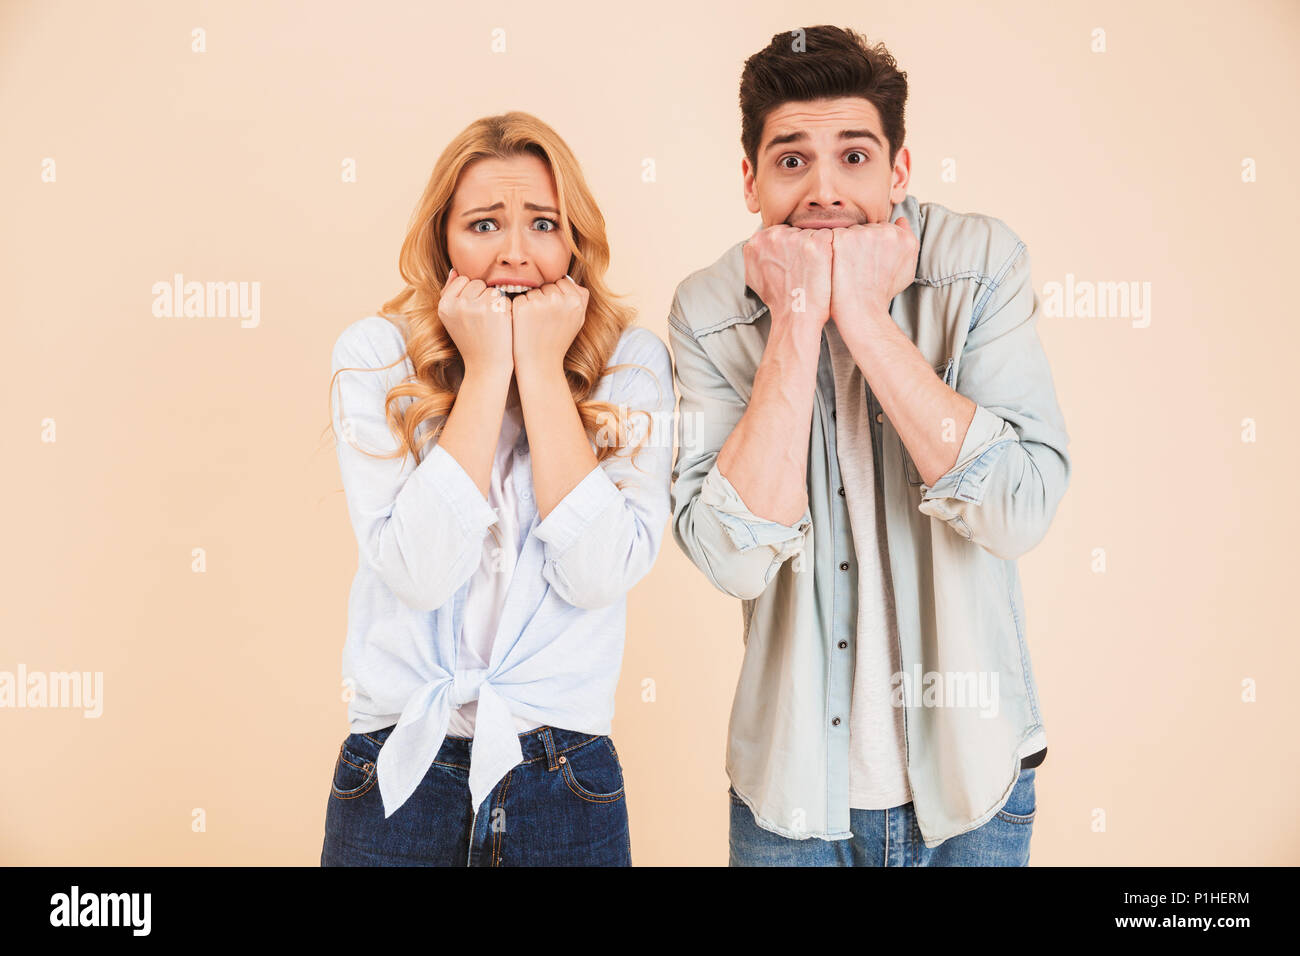 Image of stressed people man and woman in basic clothing expressing fright and biting their fists isolated over beige background - Stock Image